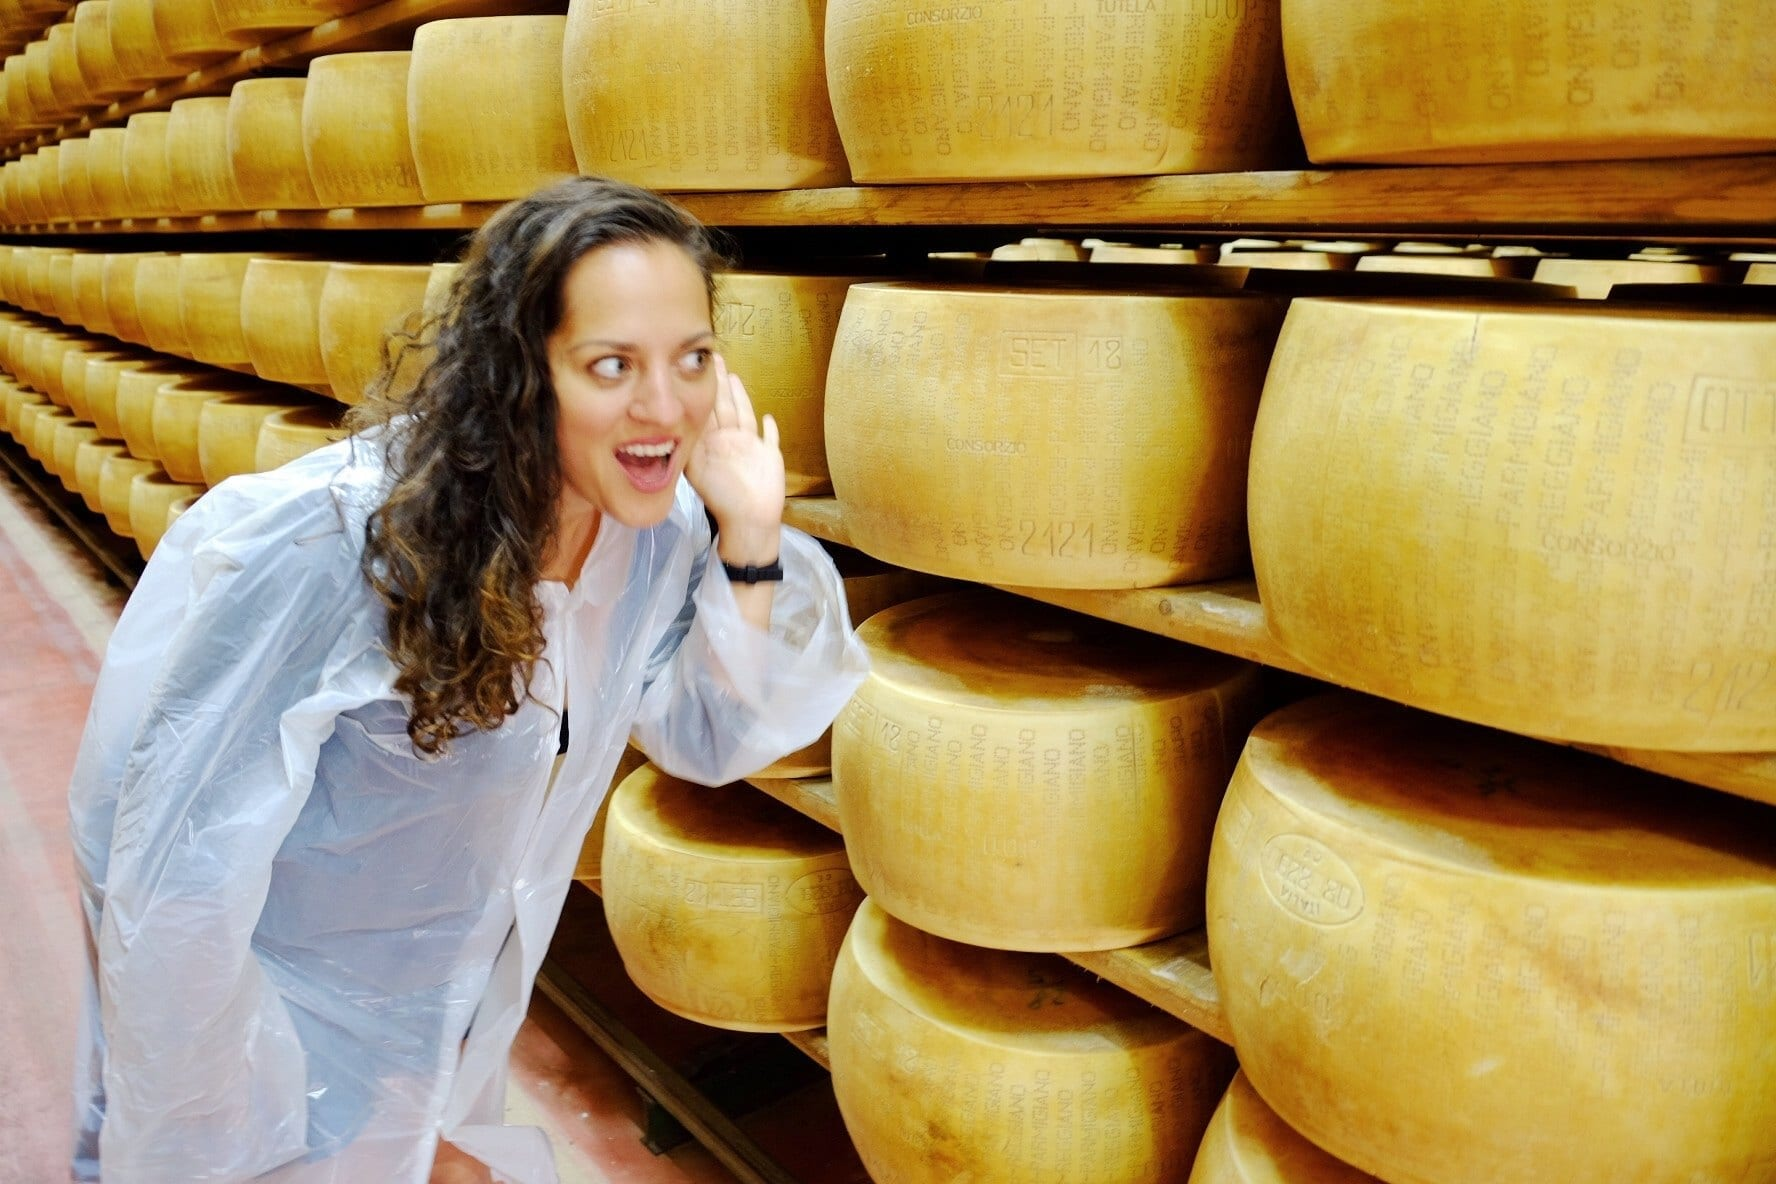 Kate stands in front of shelves of parmigiana reggiano wheels. She wears a protective robe and leans in with her hand to her ear, as if listening to the cheese.